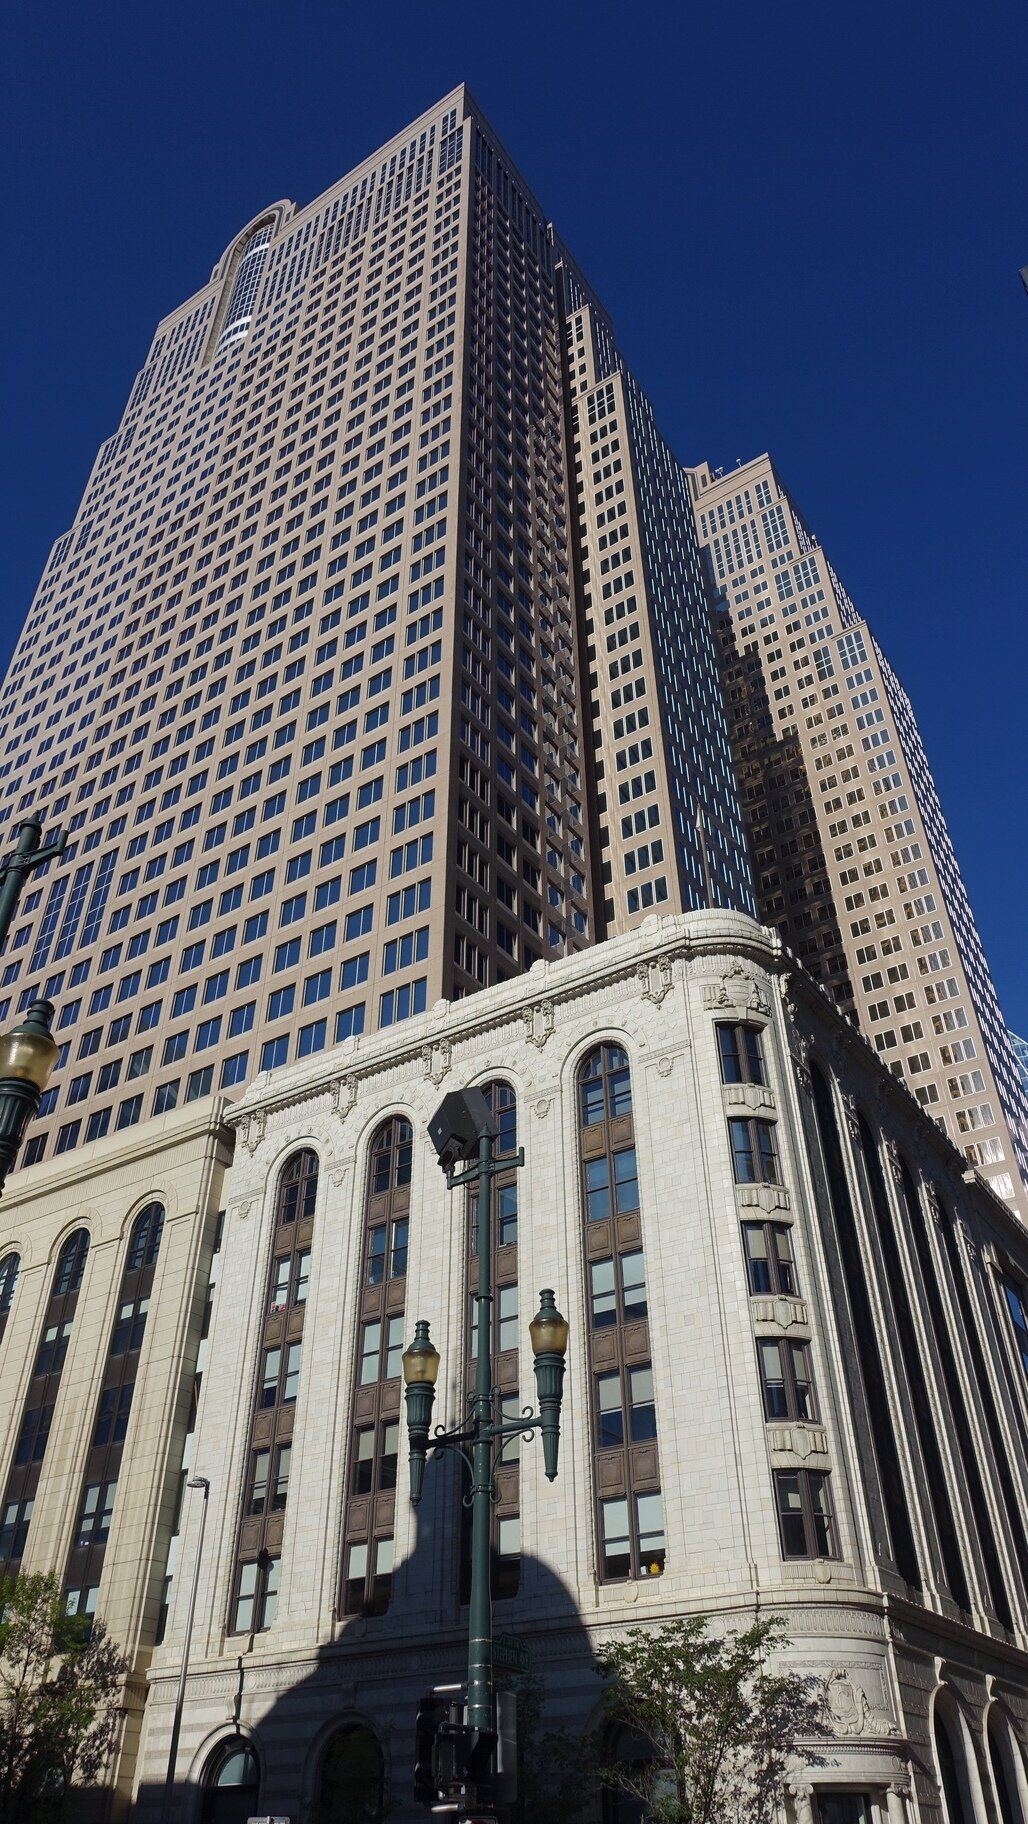 Hollinsworth Building & Bankers Hall